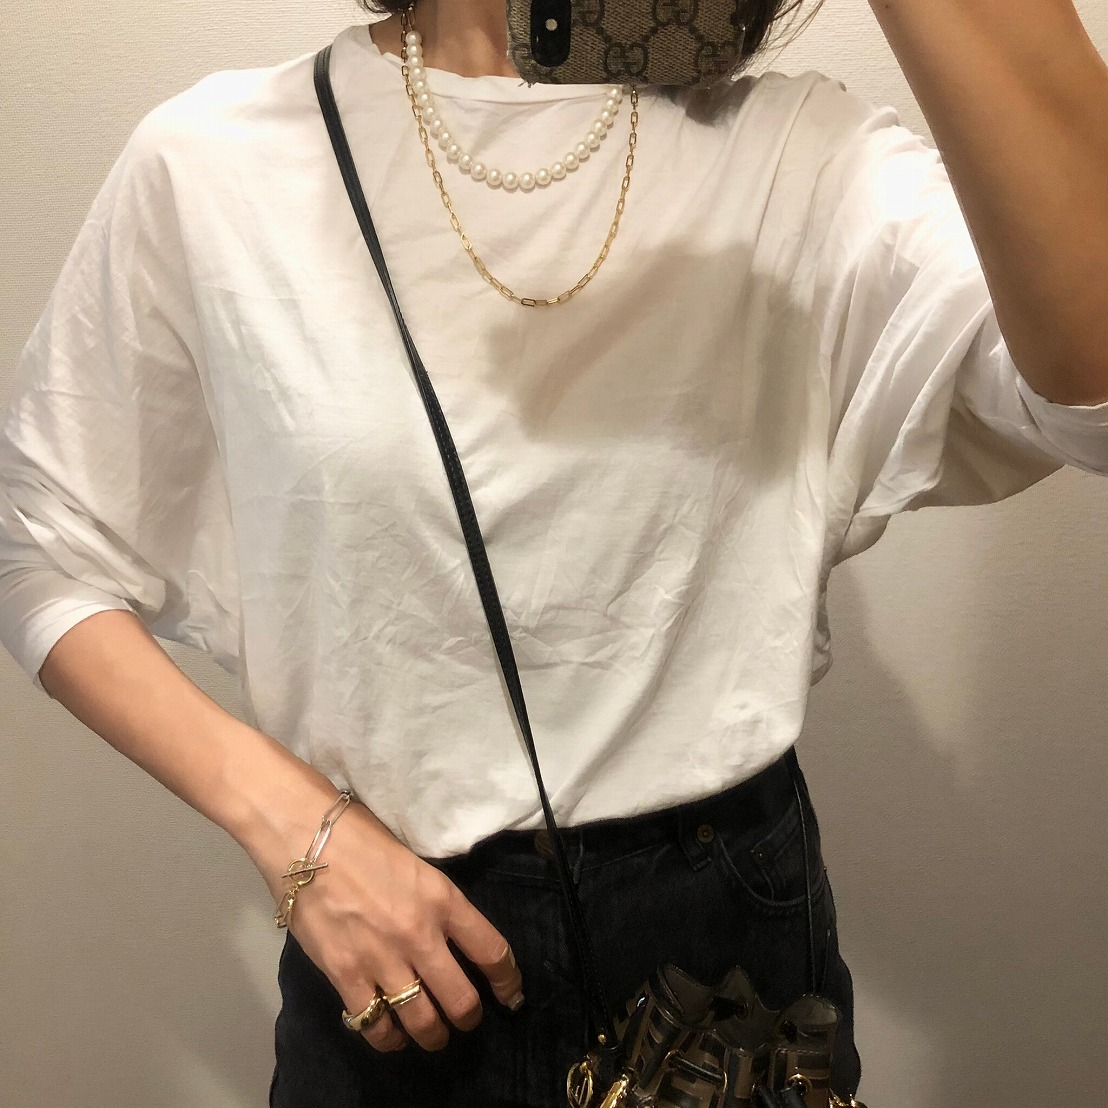 【SOLD OUT】チェーンネックレス